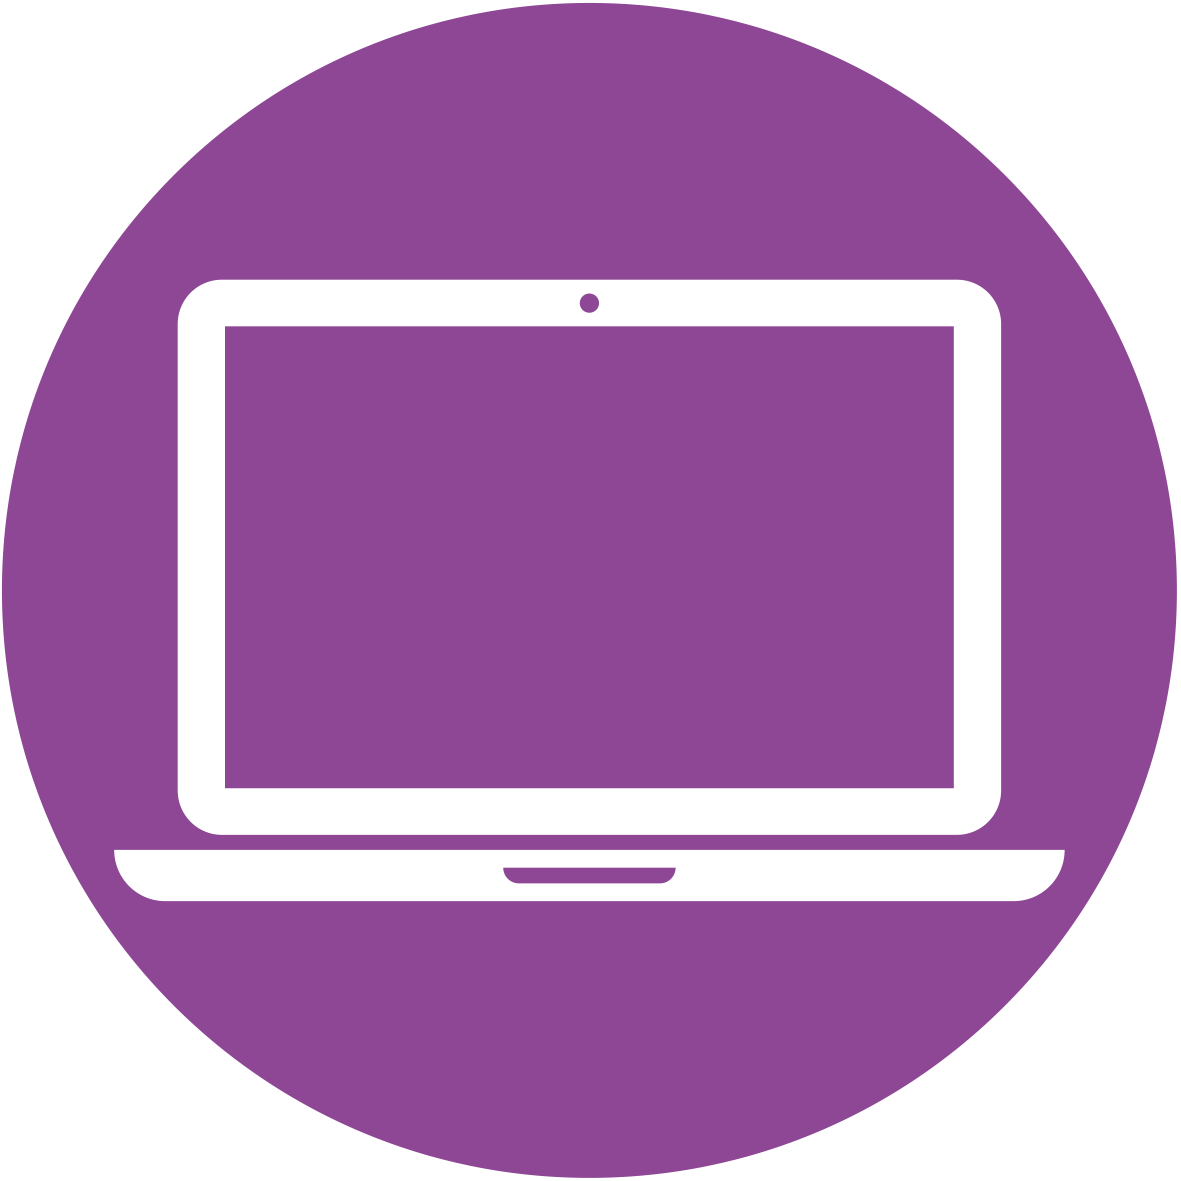 Web (purple).png